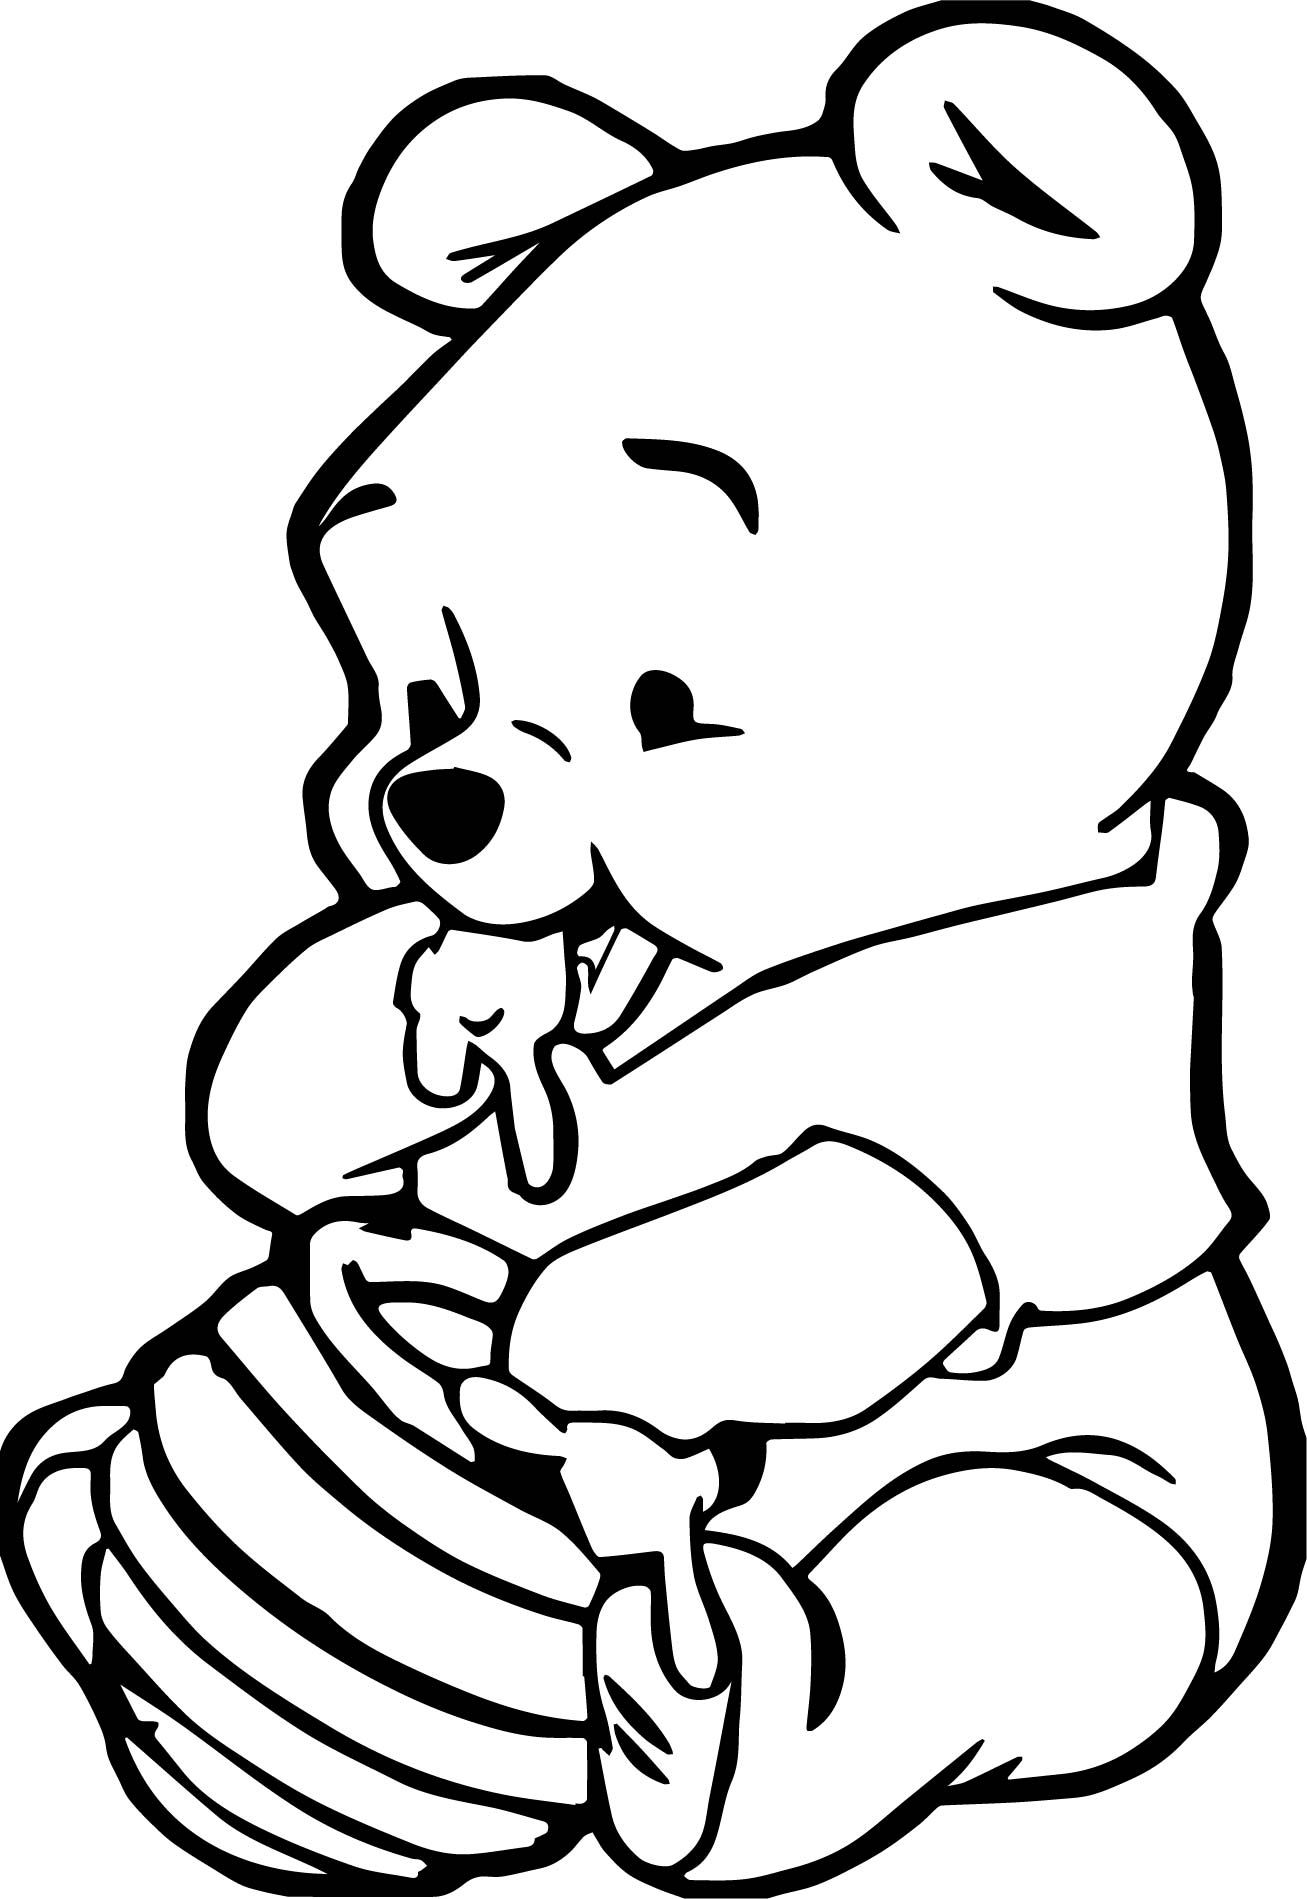 Awesome Cute Baby Winnie The Pooh Eating Hunny Coloring Page Animal Coloring Pages Zoo Animal Coloring Pages Disney Coloring Pages